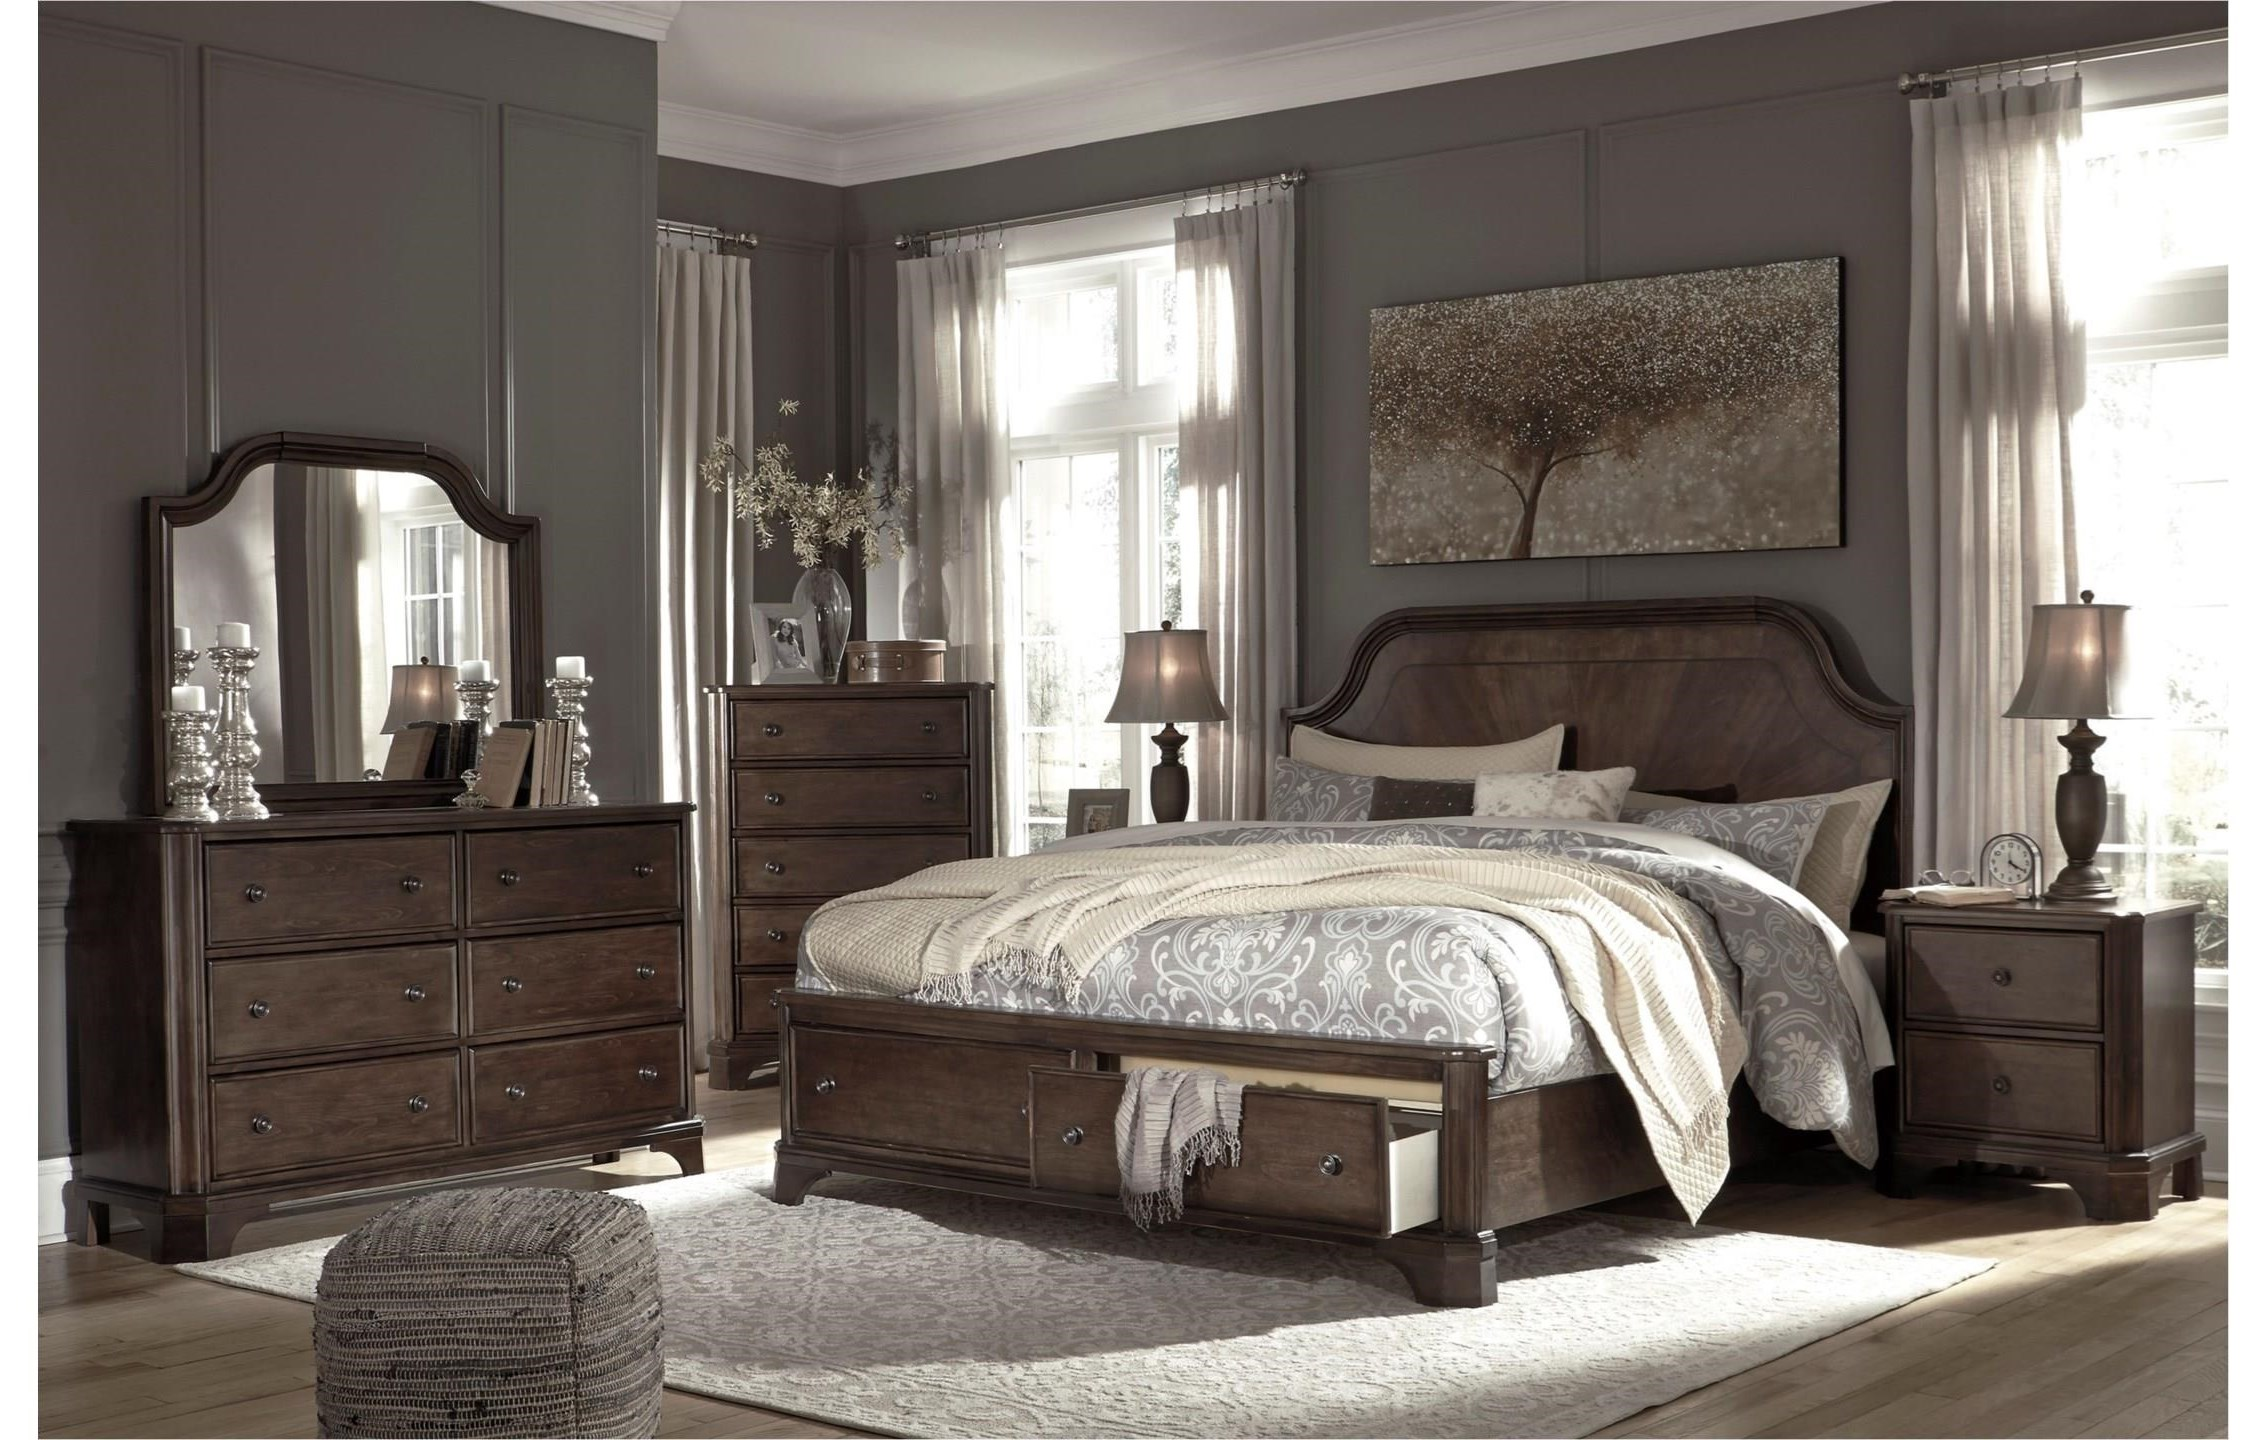 Adinton Queen bedroom group by Signature Design by Ashley at Value City Furniture